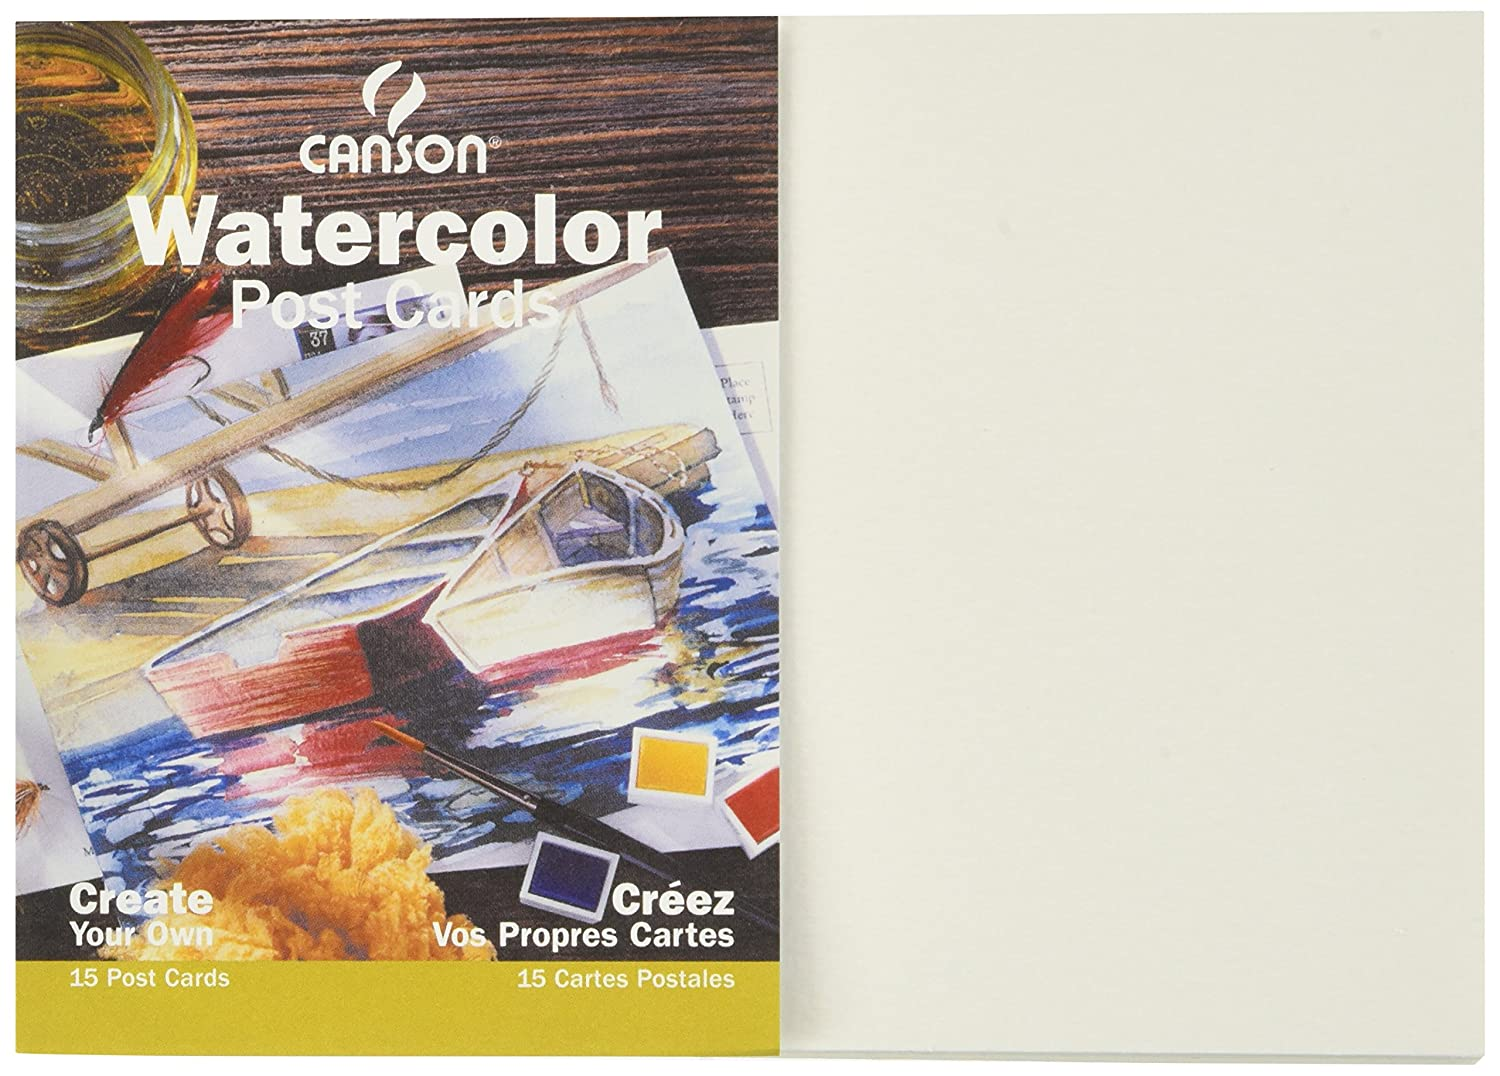 Canson Customizable Blank Watercolor Paper Postcards, 140 Pound, 5 x 7 Inch, 15 Card Set 100511543